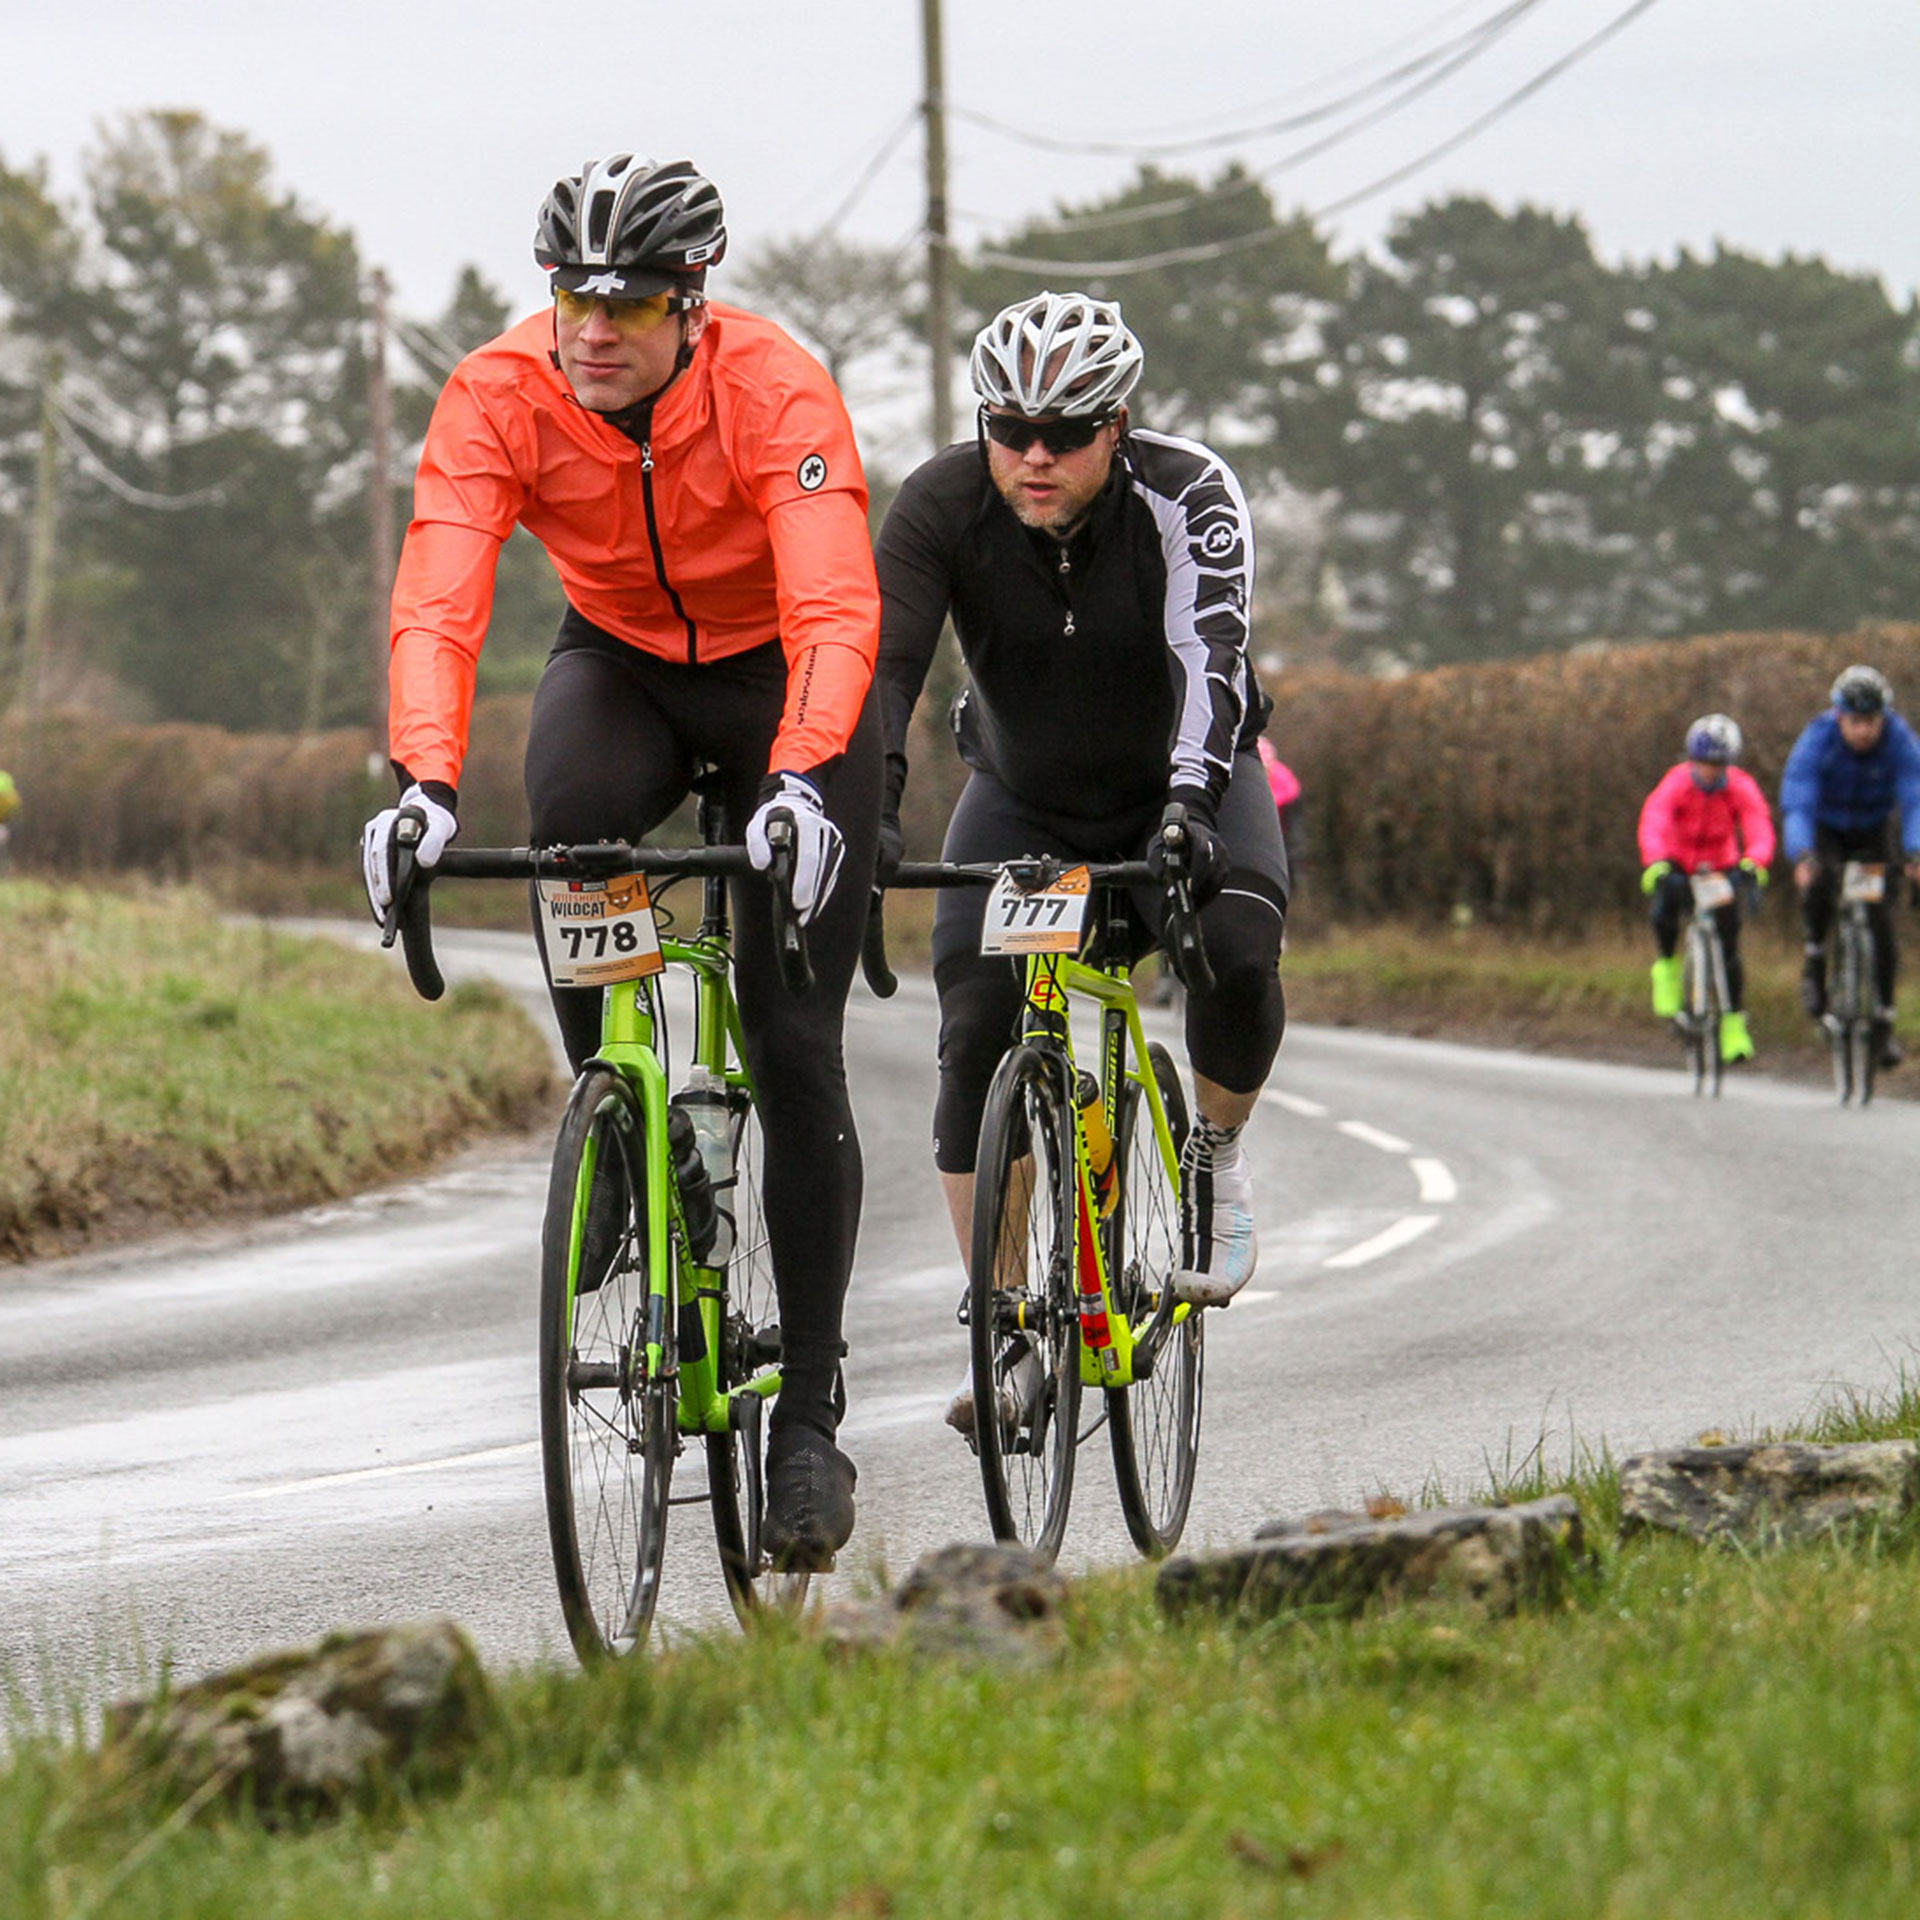 Cyclists Riding Wiltshire Wildcat Sportive